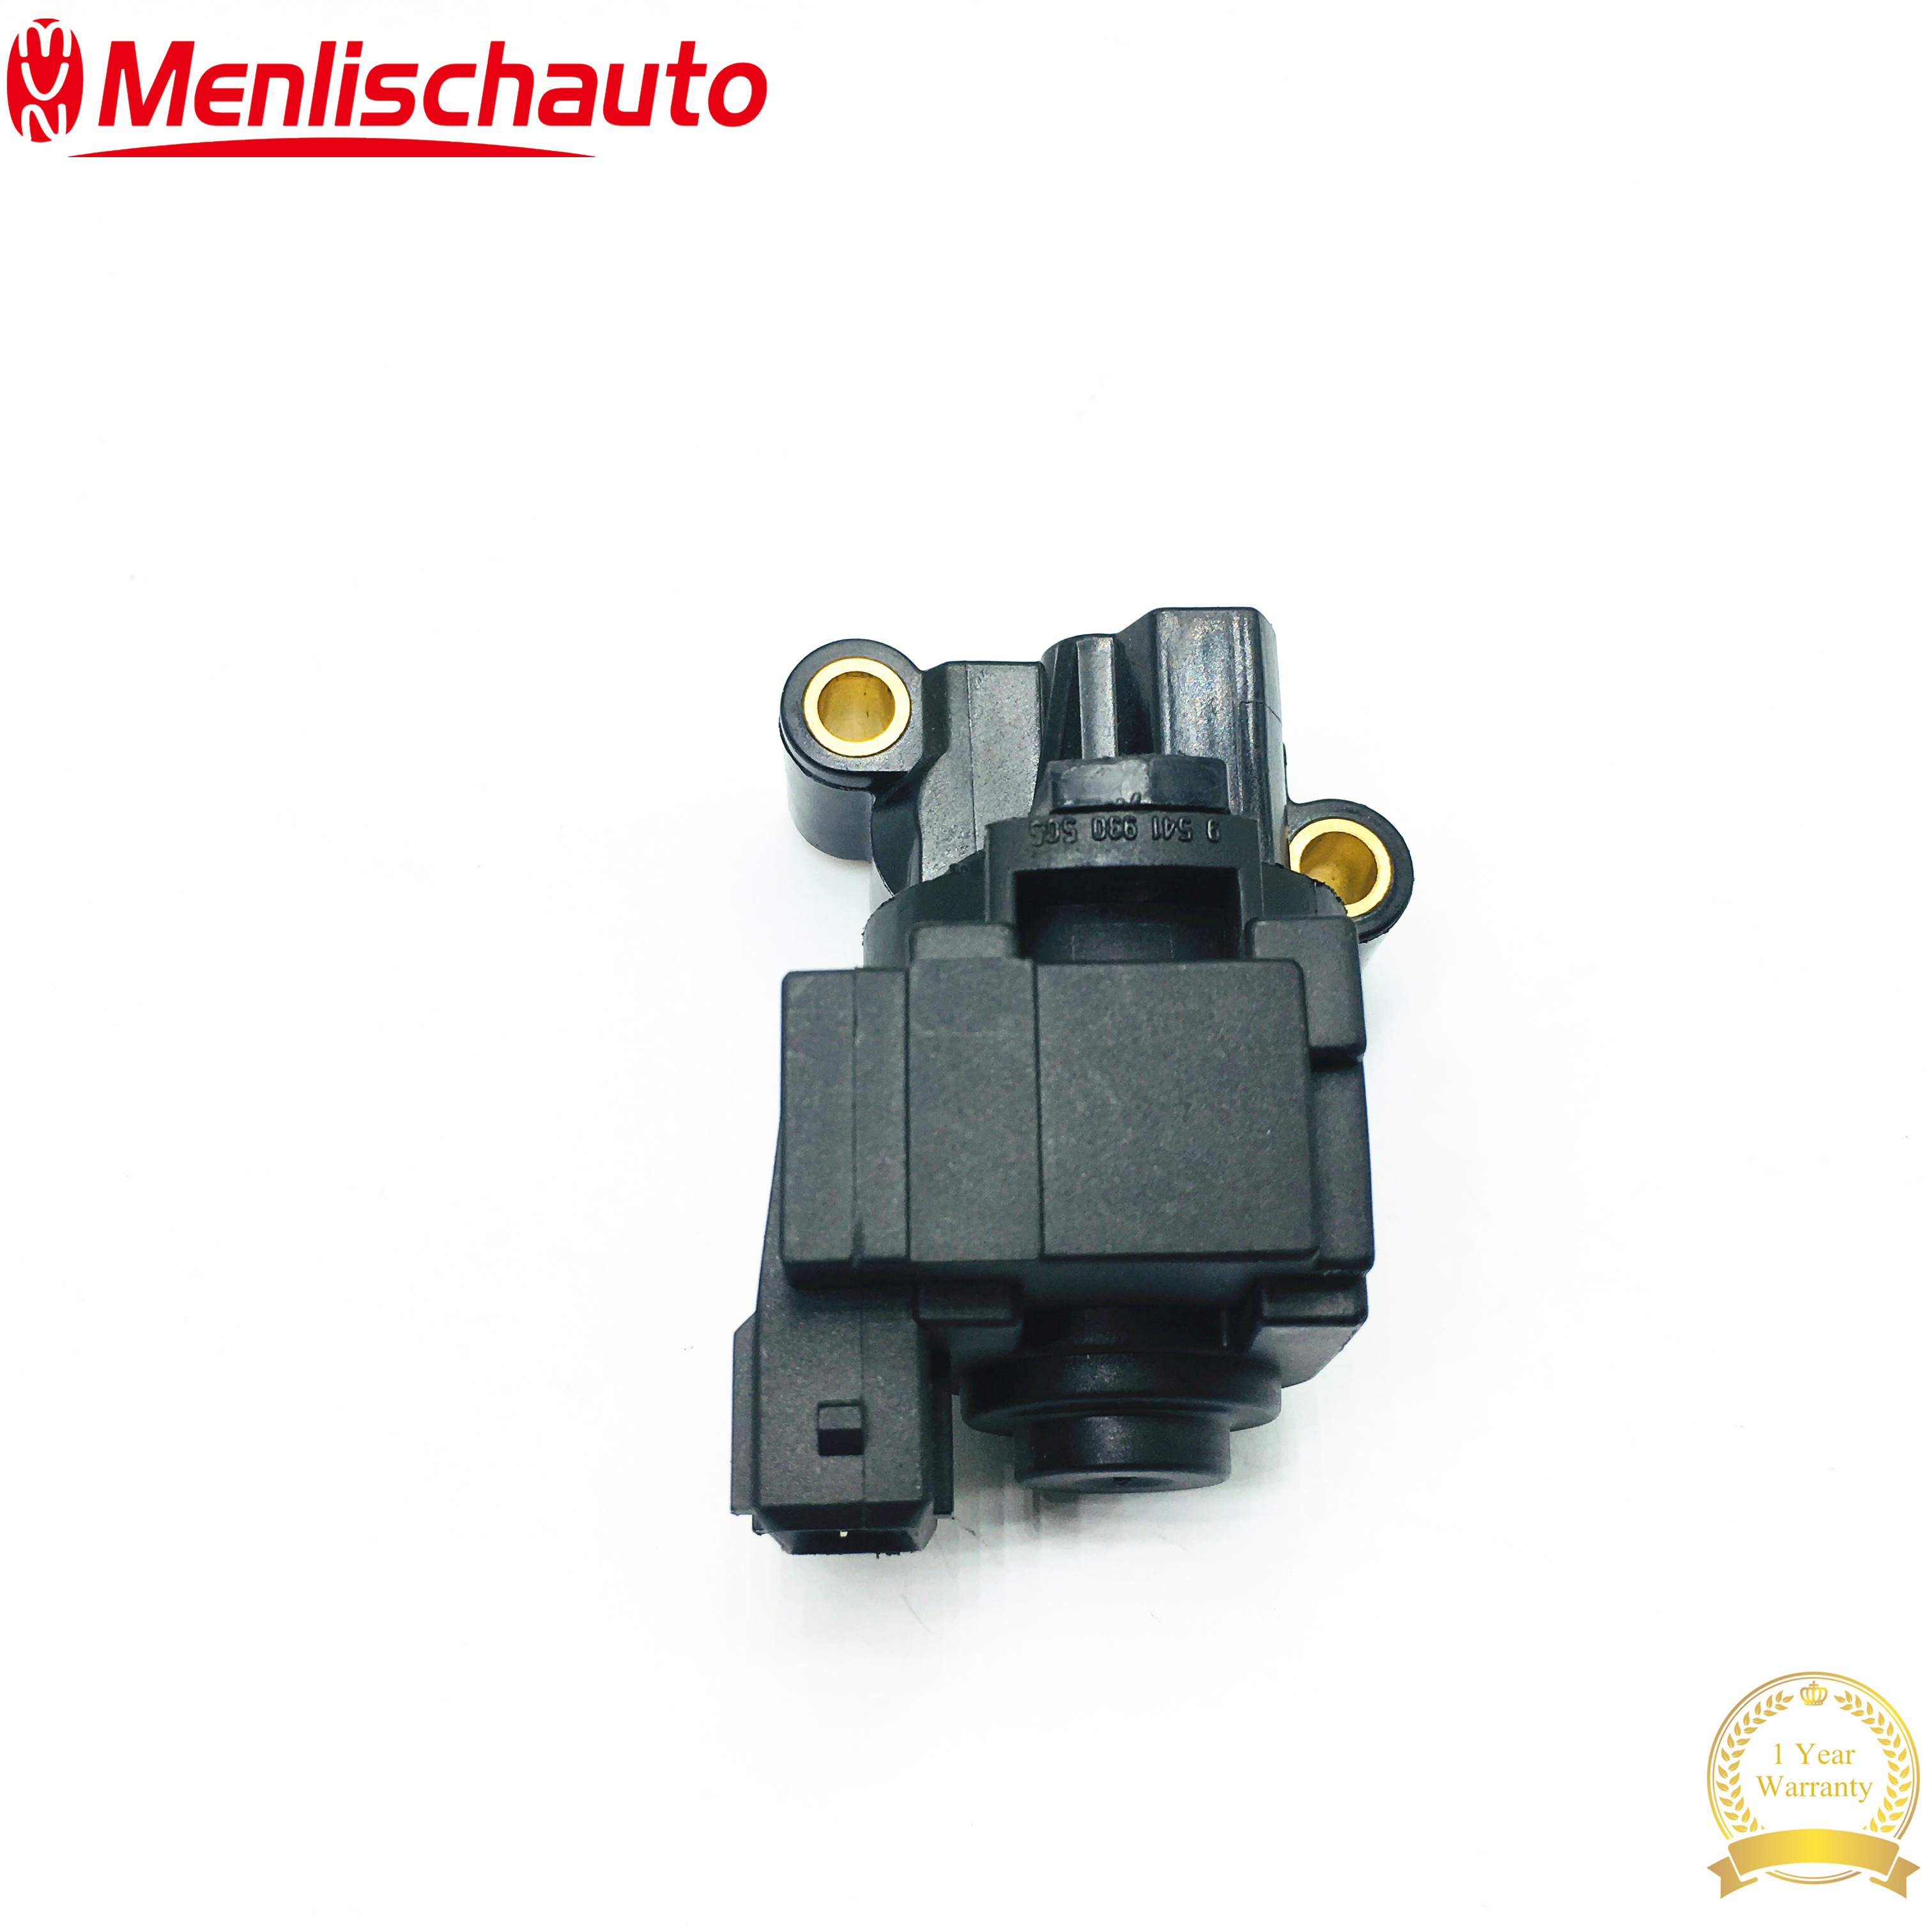 Idle Air Control Valve IAC IACV 35150 22600 For Accent Elantra Tiburon Scoupe Dodge Verna 2000 AC4229AC493 in Car Electronic Throttle Controller from Automobiles Motorcycles